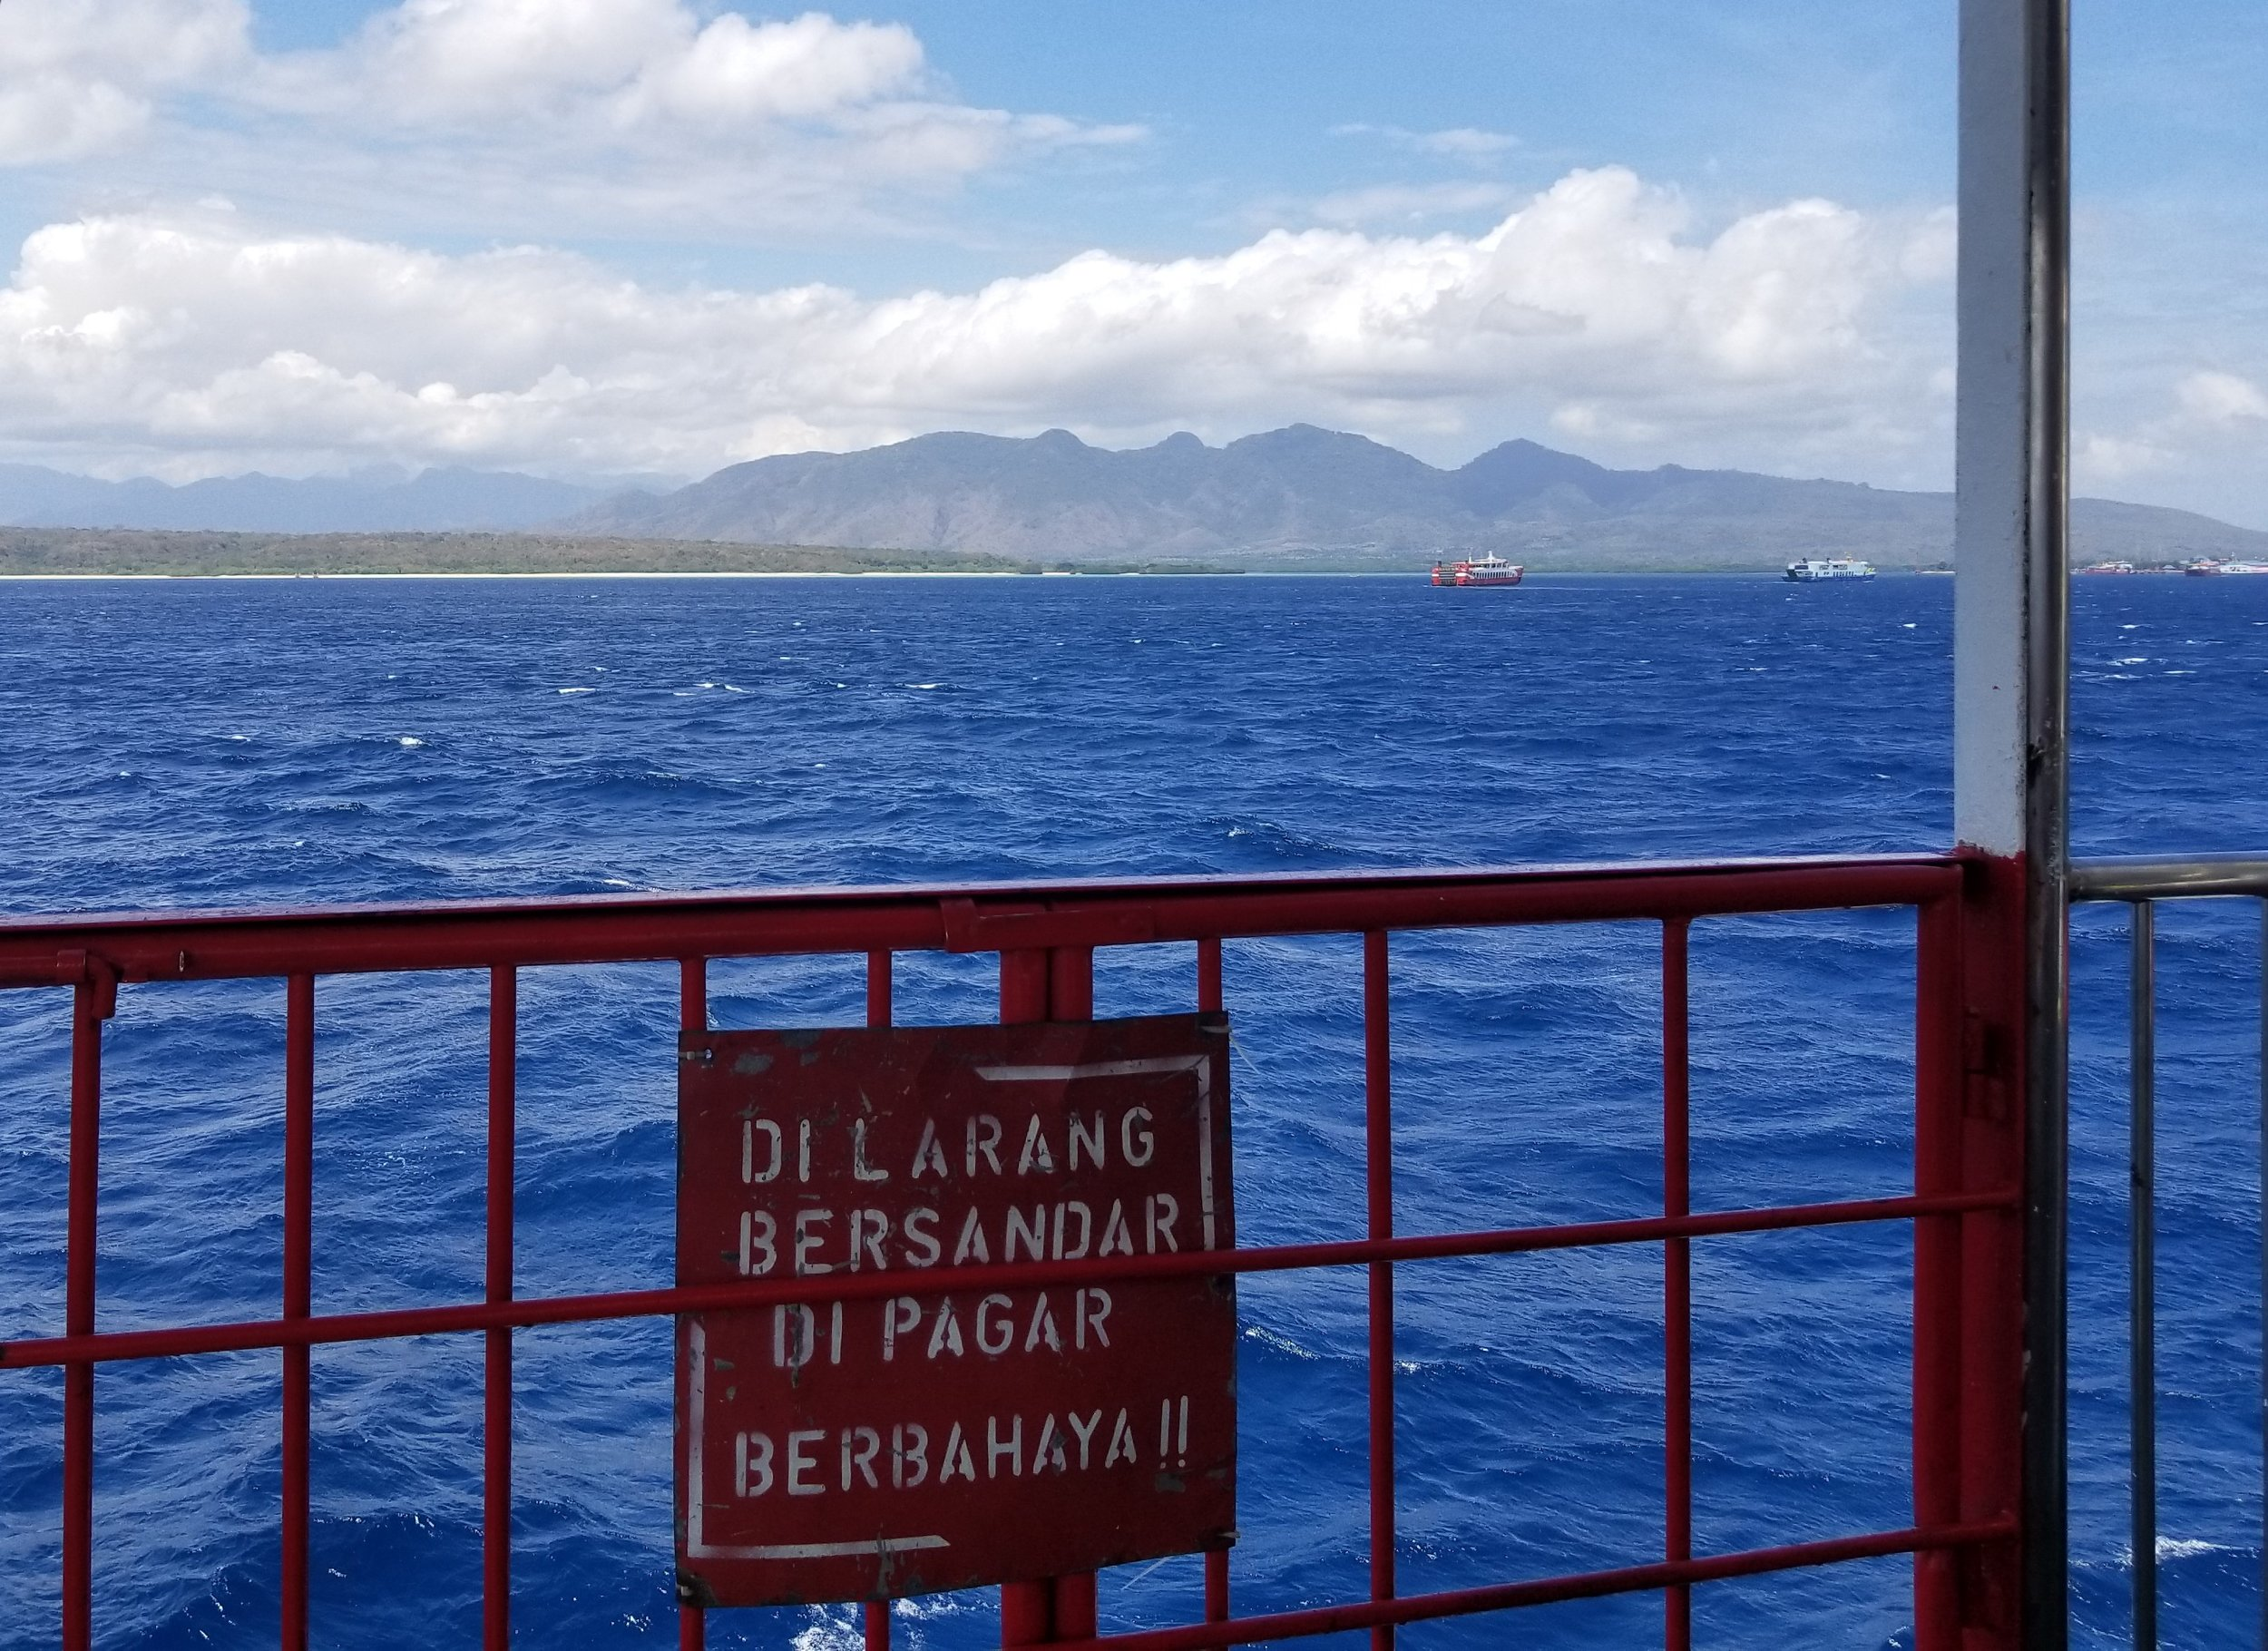 View of Bali from the ferry with impossibly blue waters in the channel. Sign says not to lean on the rail